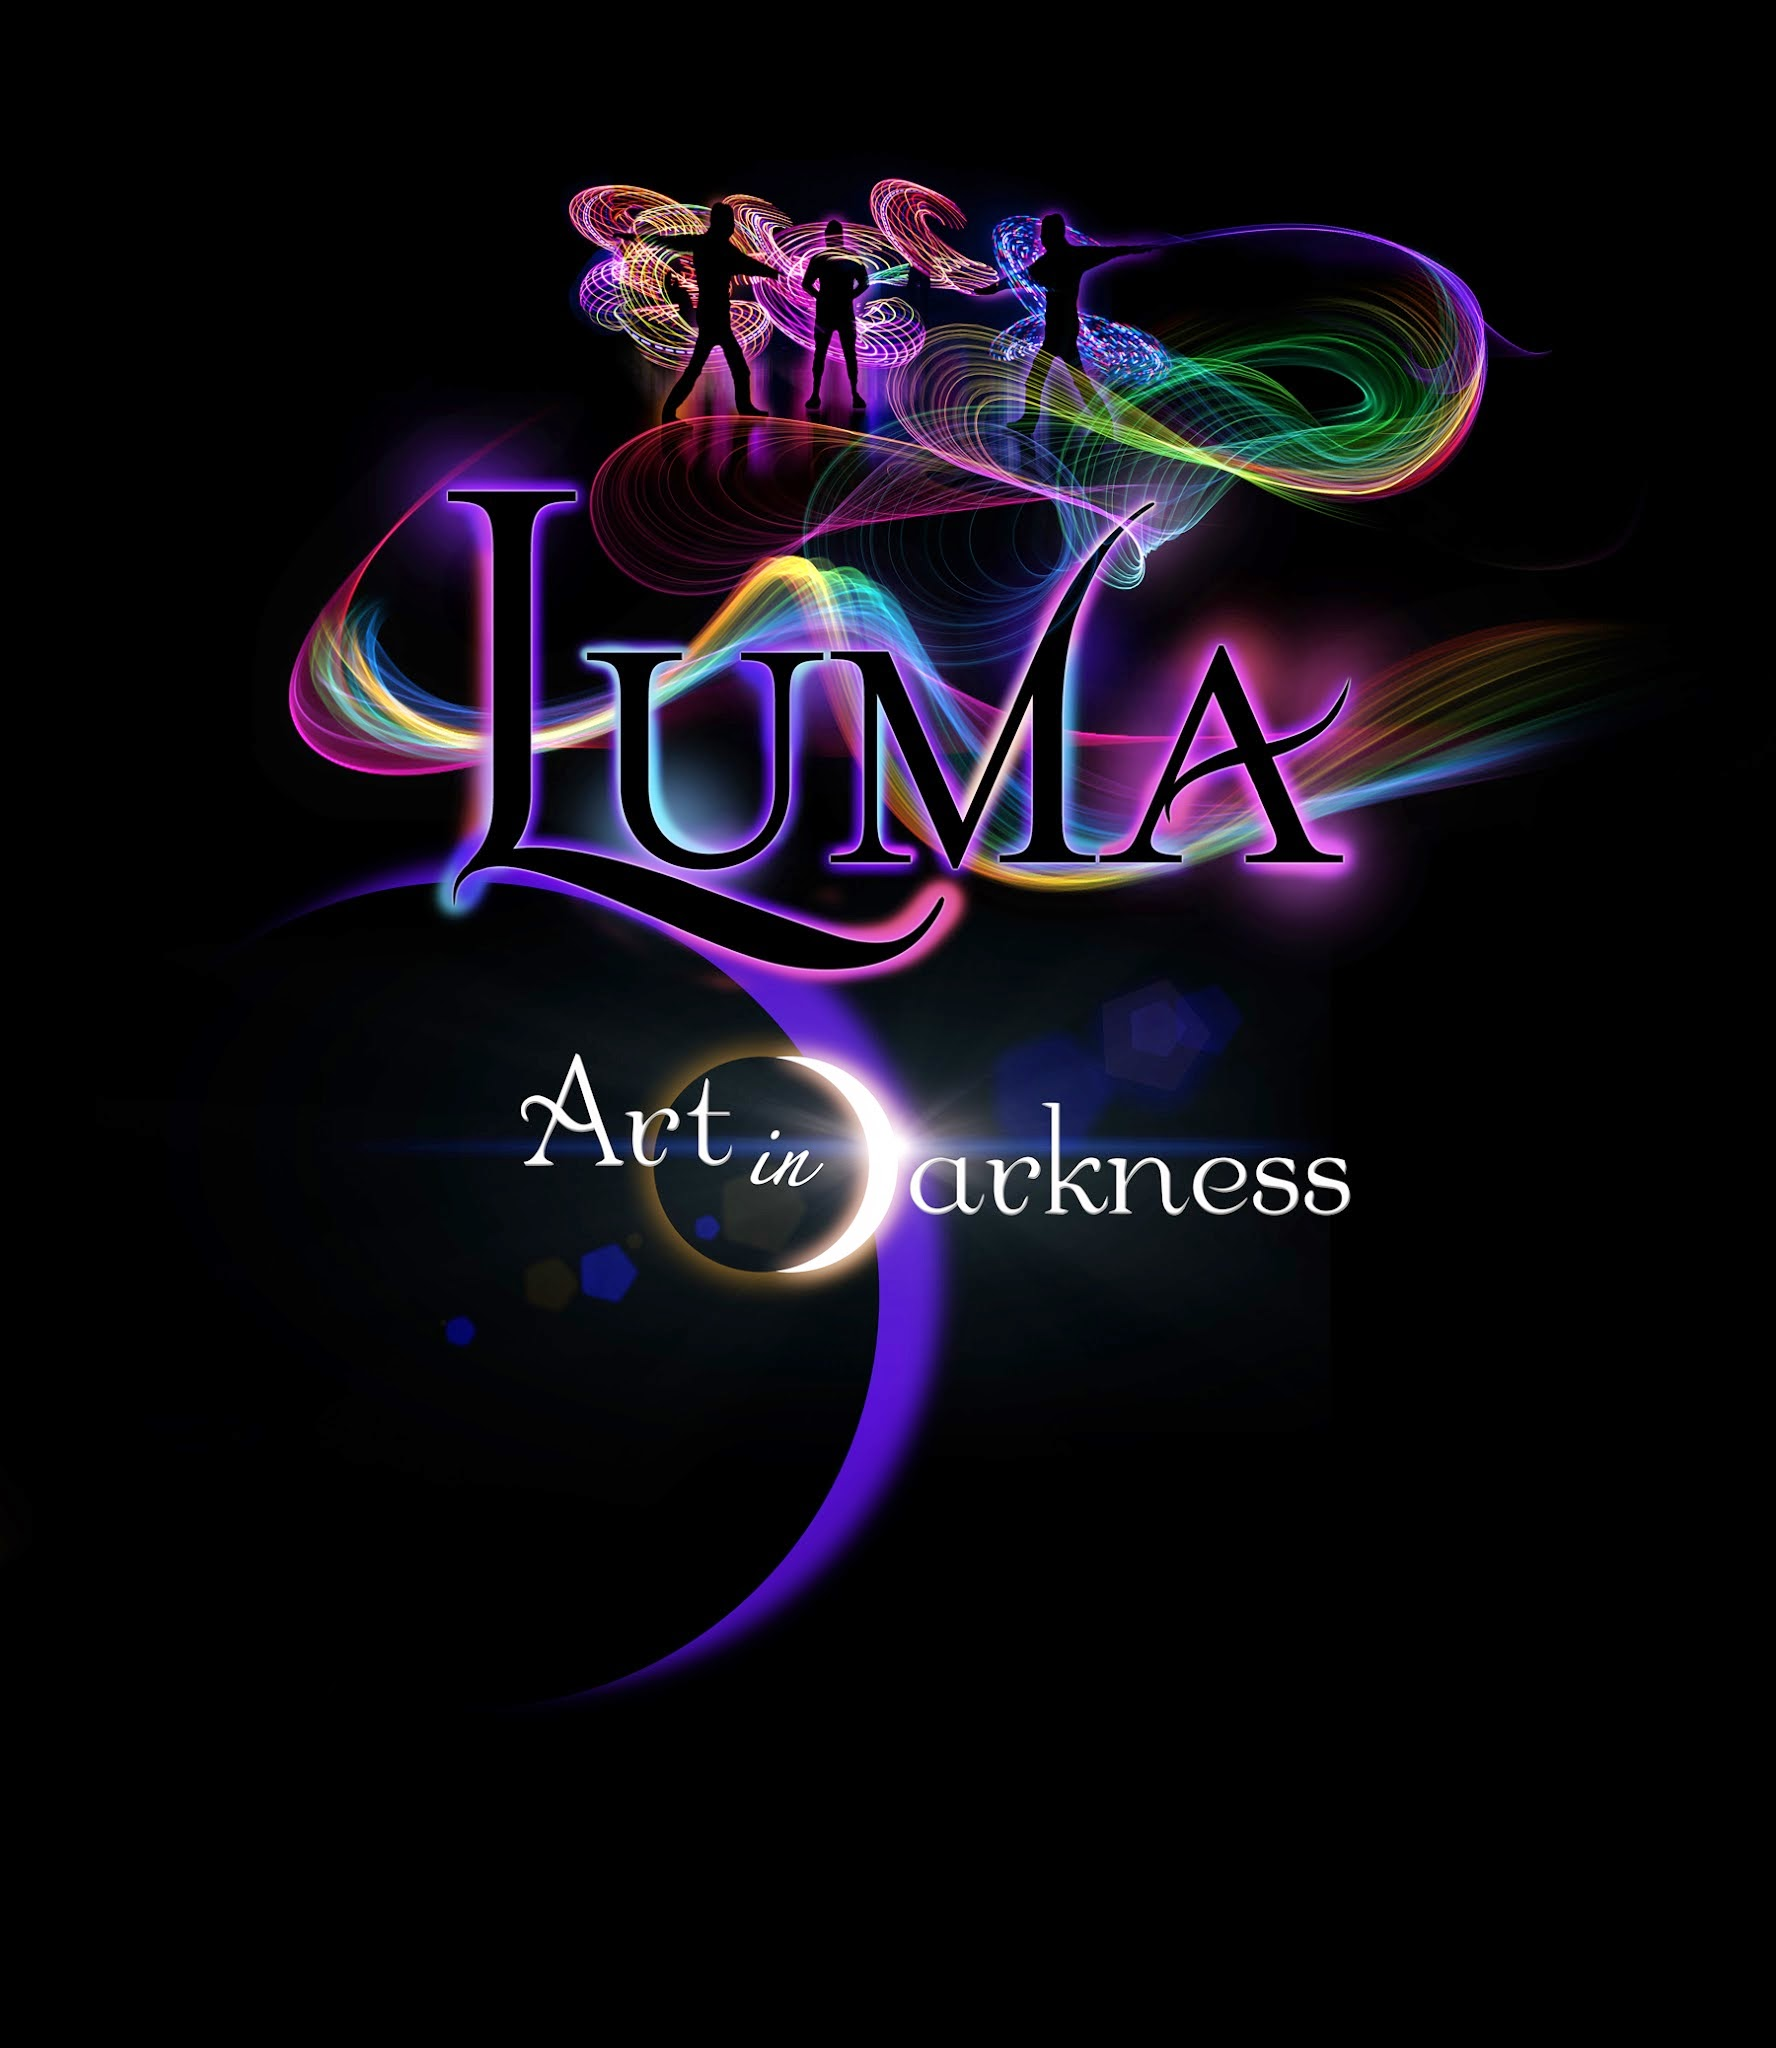 Enter the Luma: Art in Darkness Ticket Giveaway. Ends 4/19.